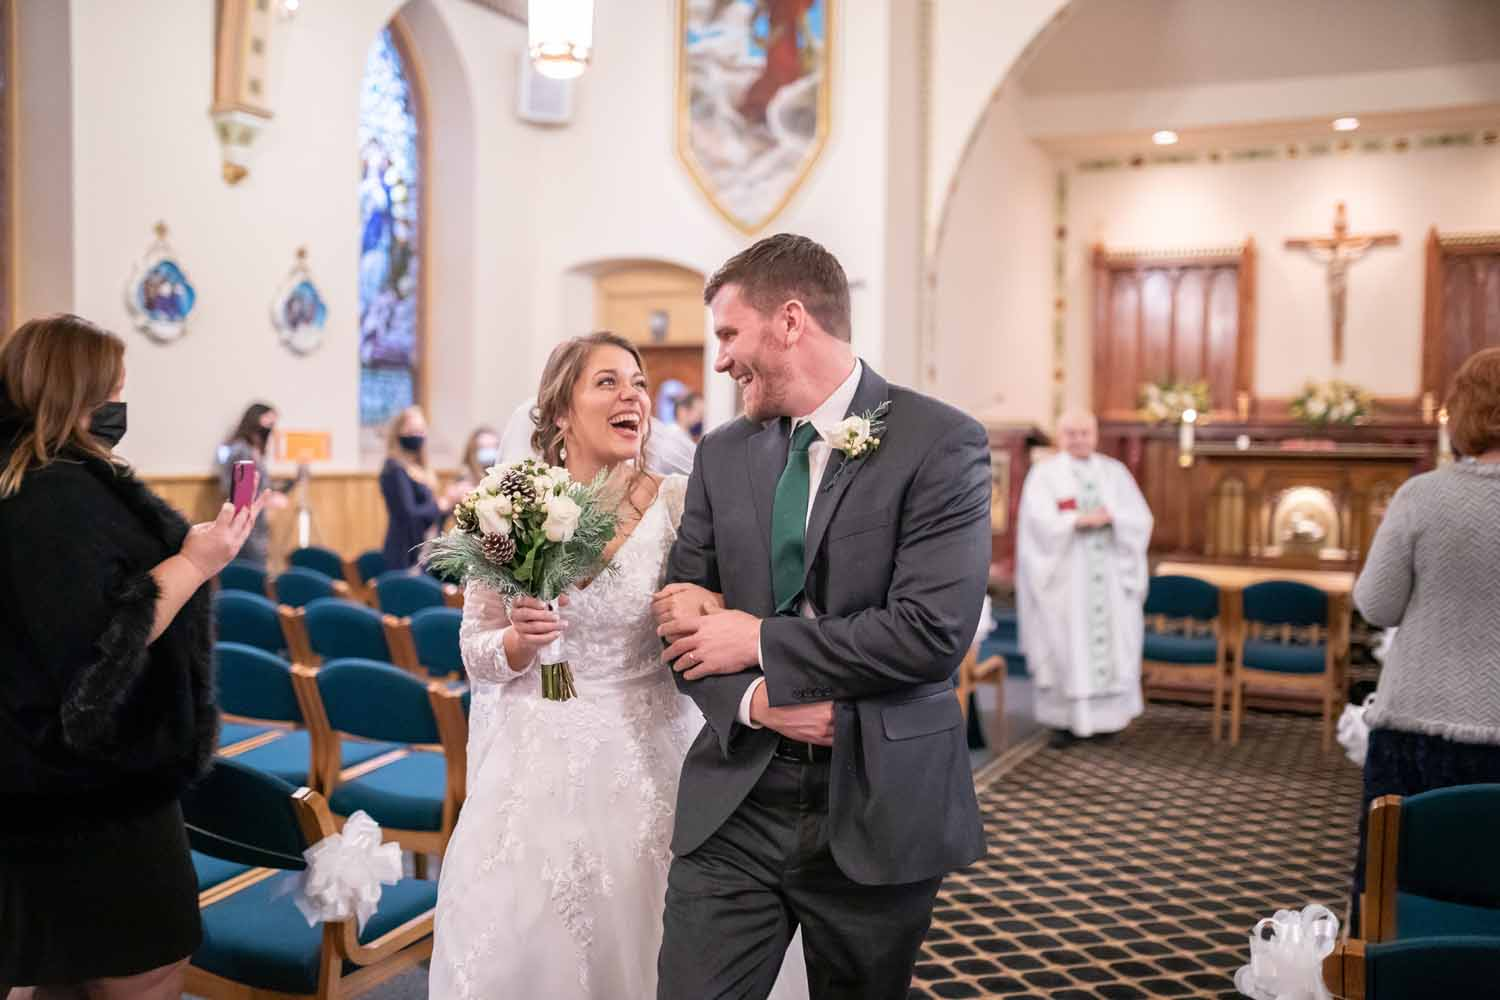 Bride and groom exit church after wedding ceremony